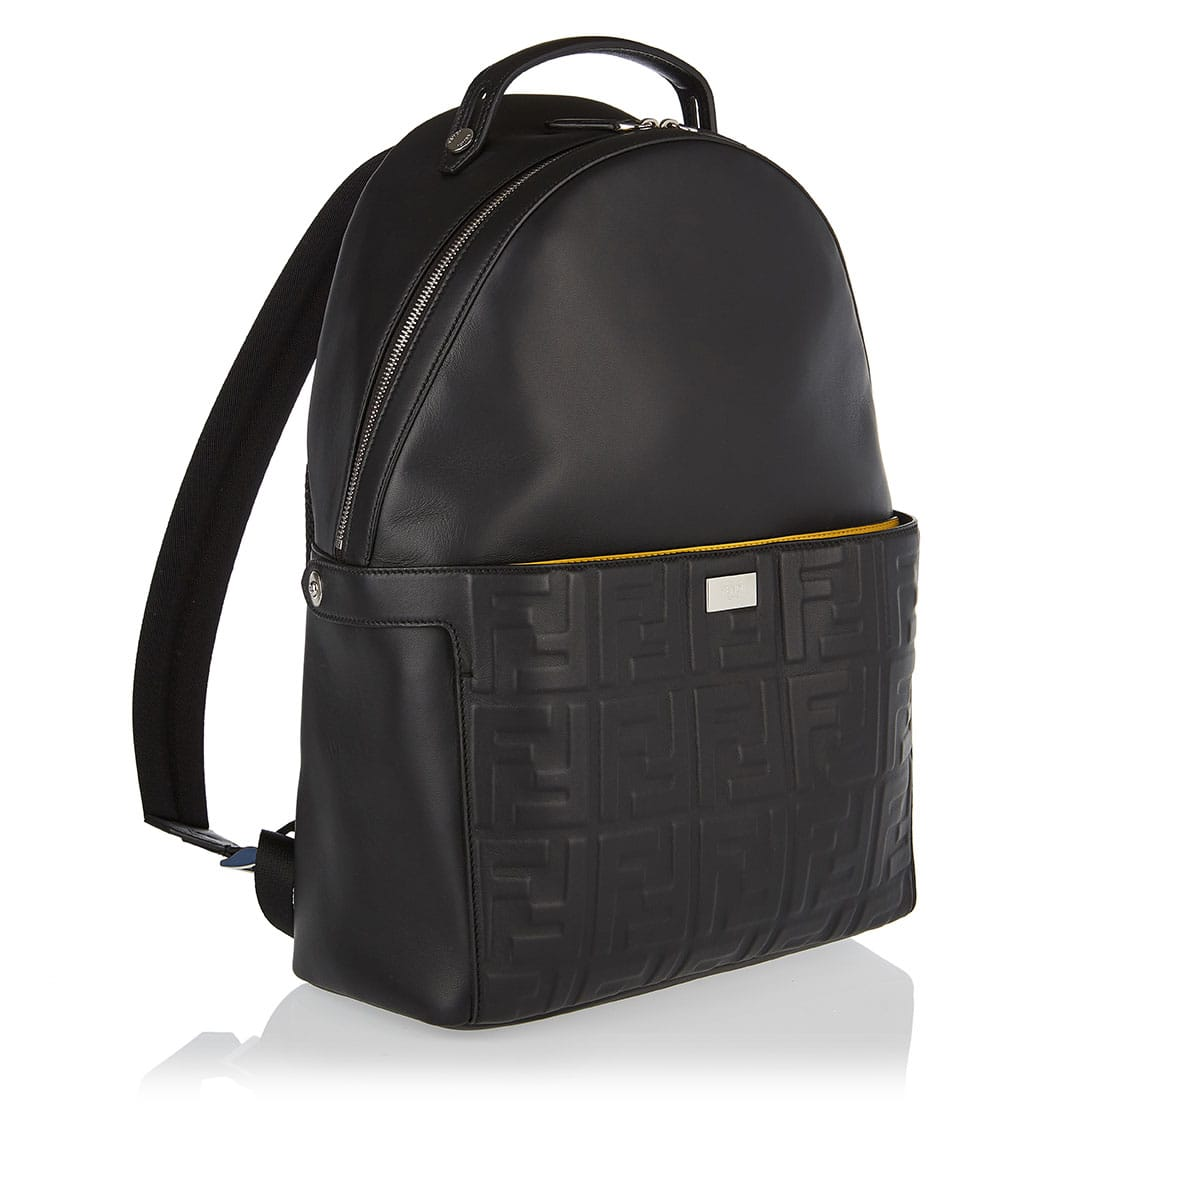 Peekaboo FF embossed leather backpack